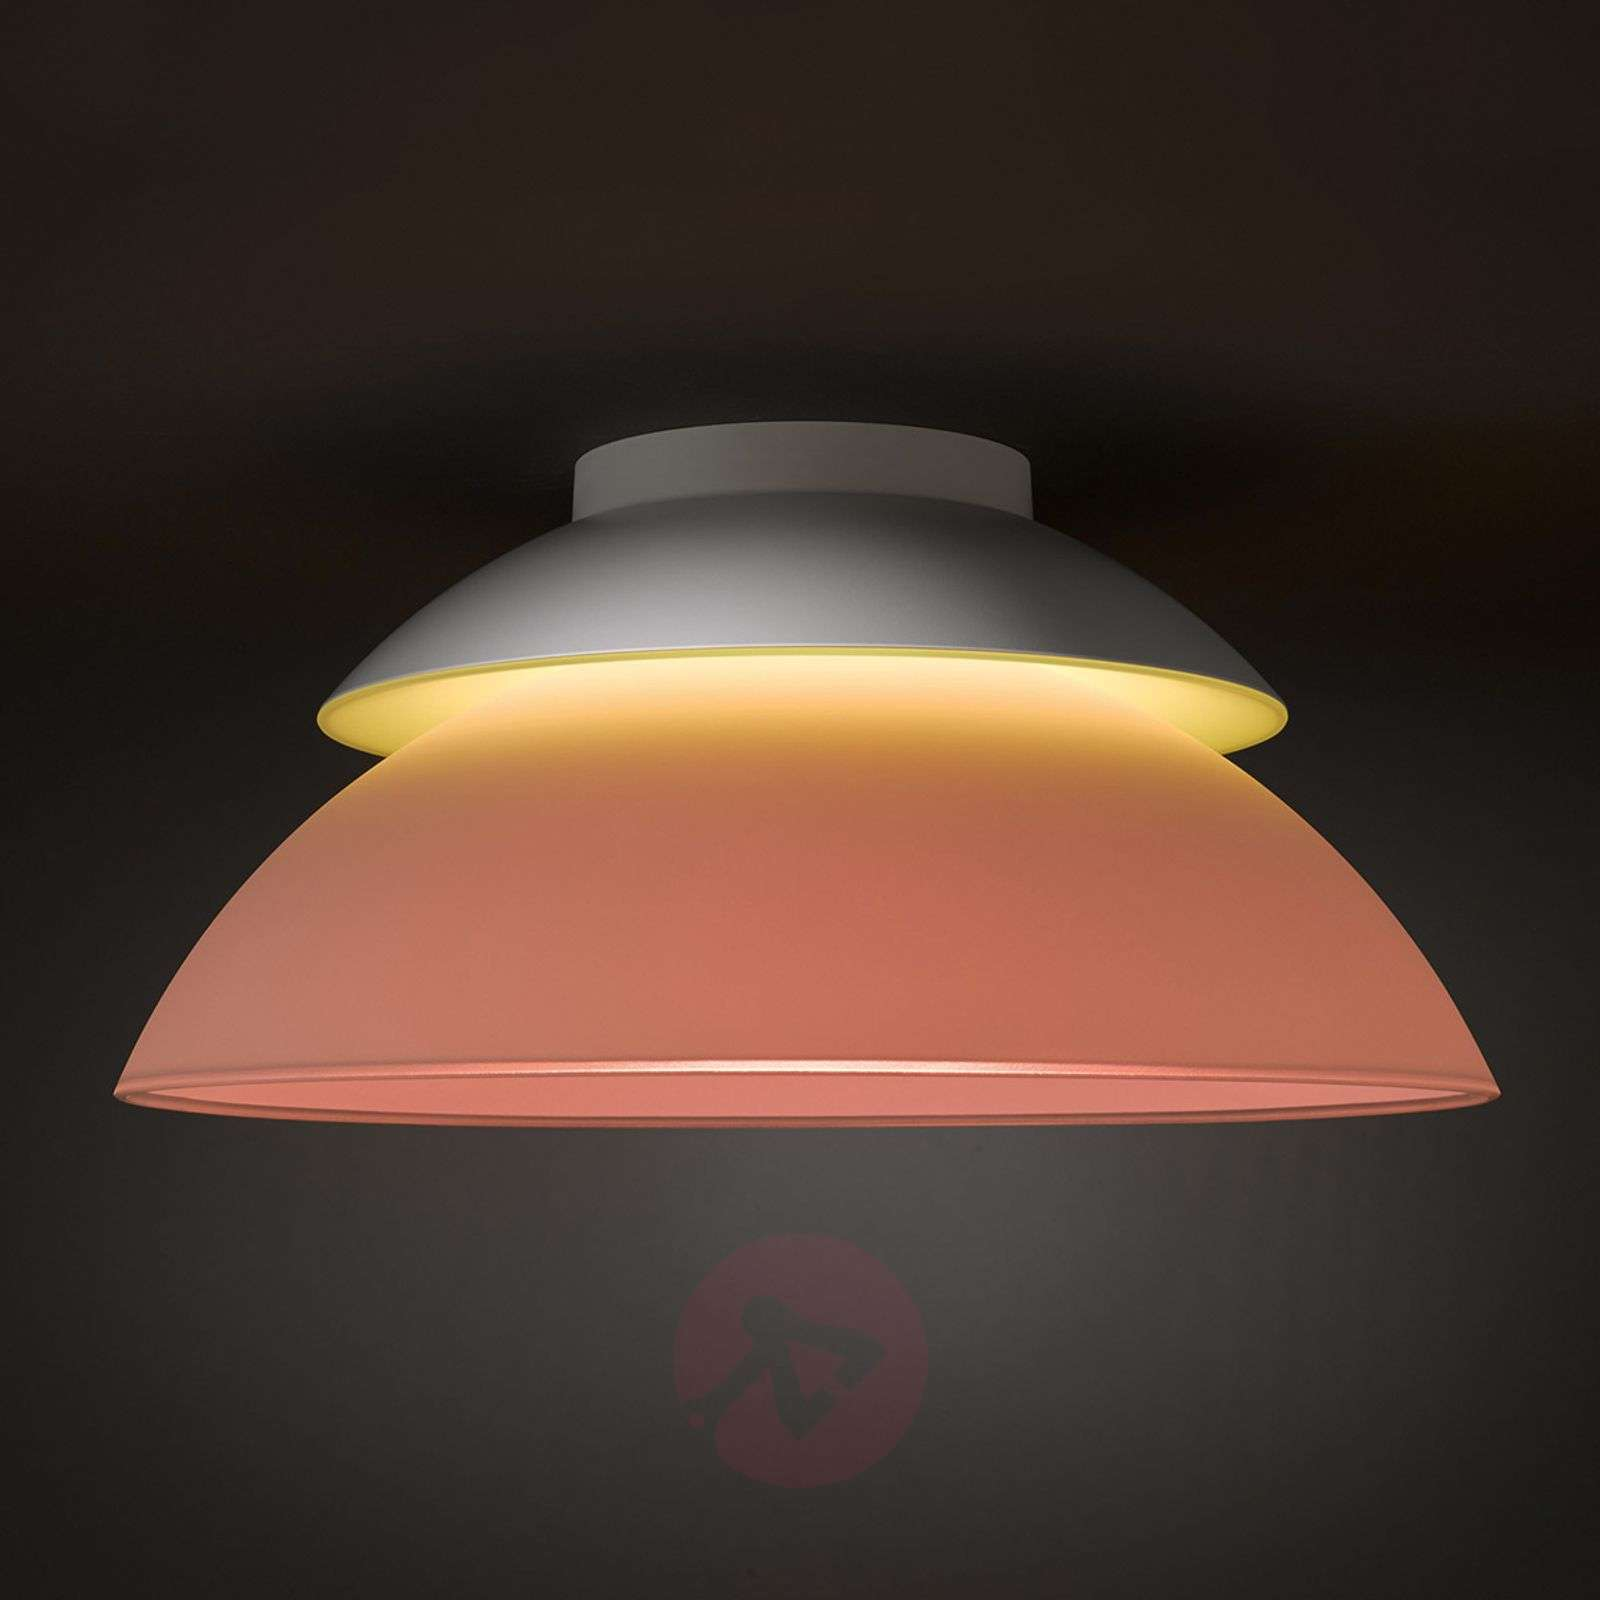 Philips Hue Beyond ceiling light-7531596-01